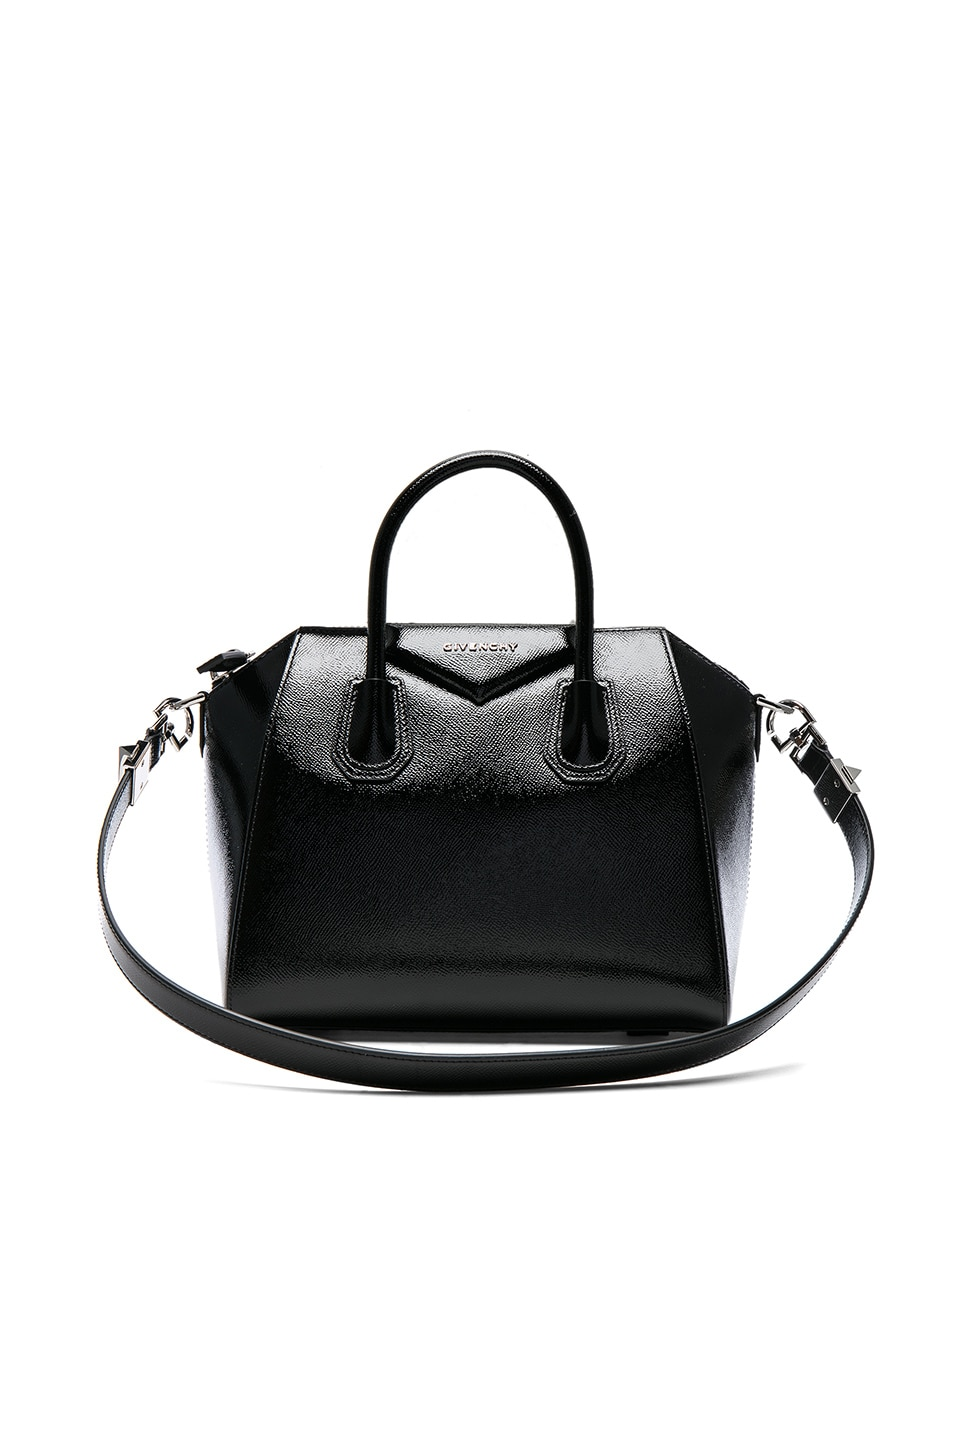 Image 1 of Givenchy Small Patent Leather Antigona in Black